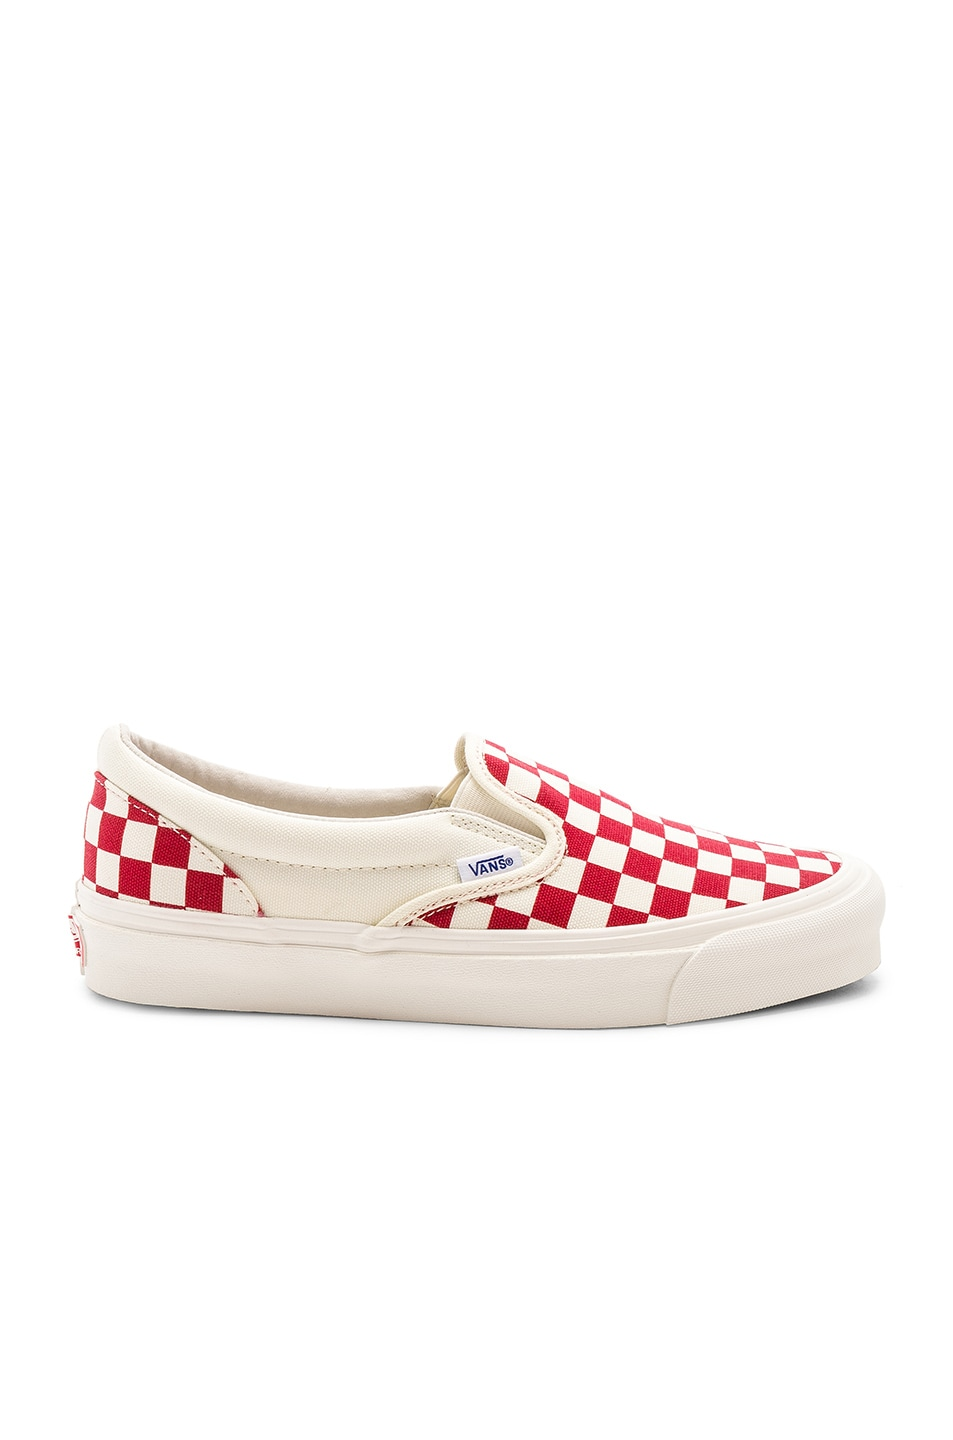 Image 2 of Vans Vault OG Classic Canvas Slip-Ons LX in White & Red